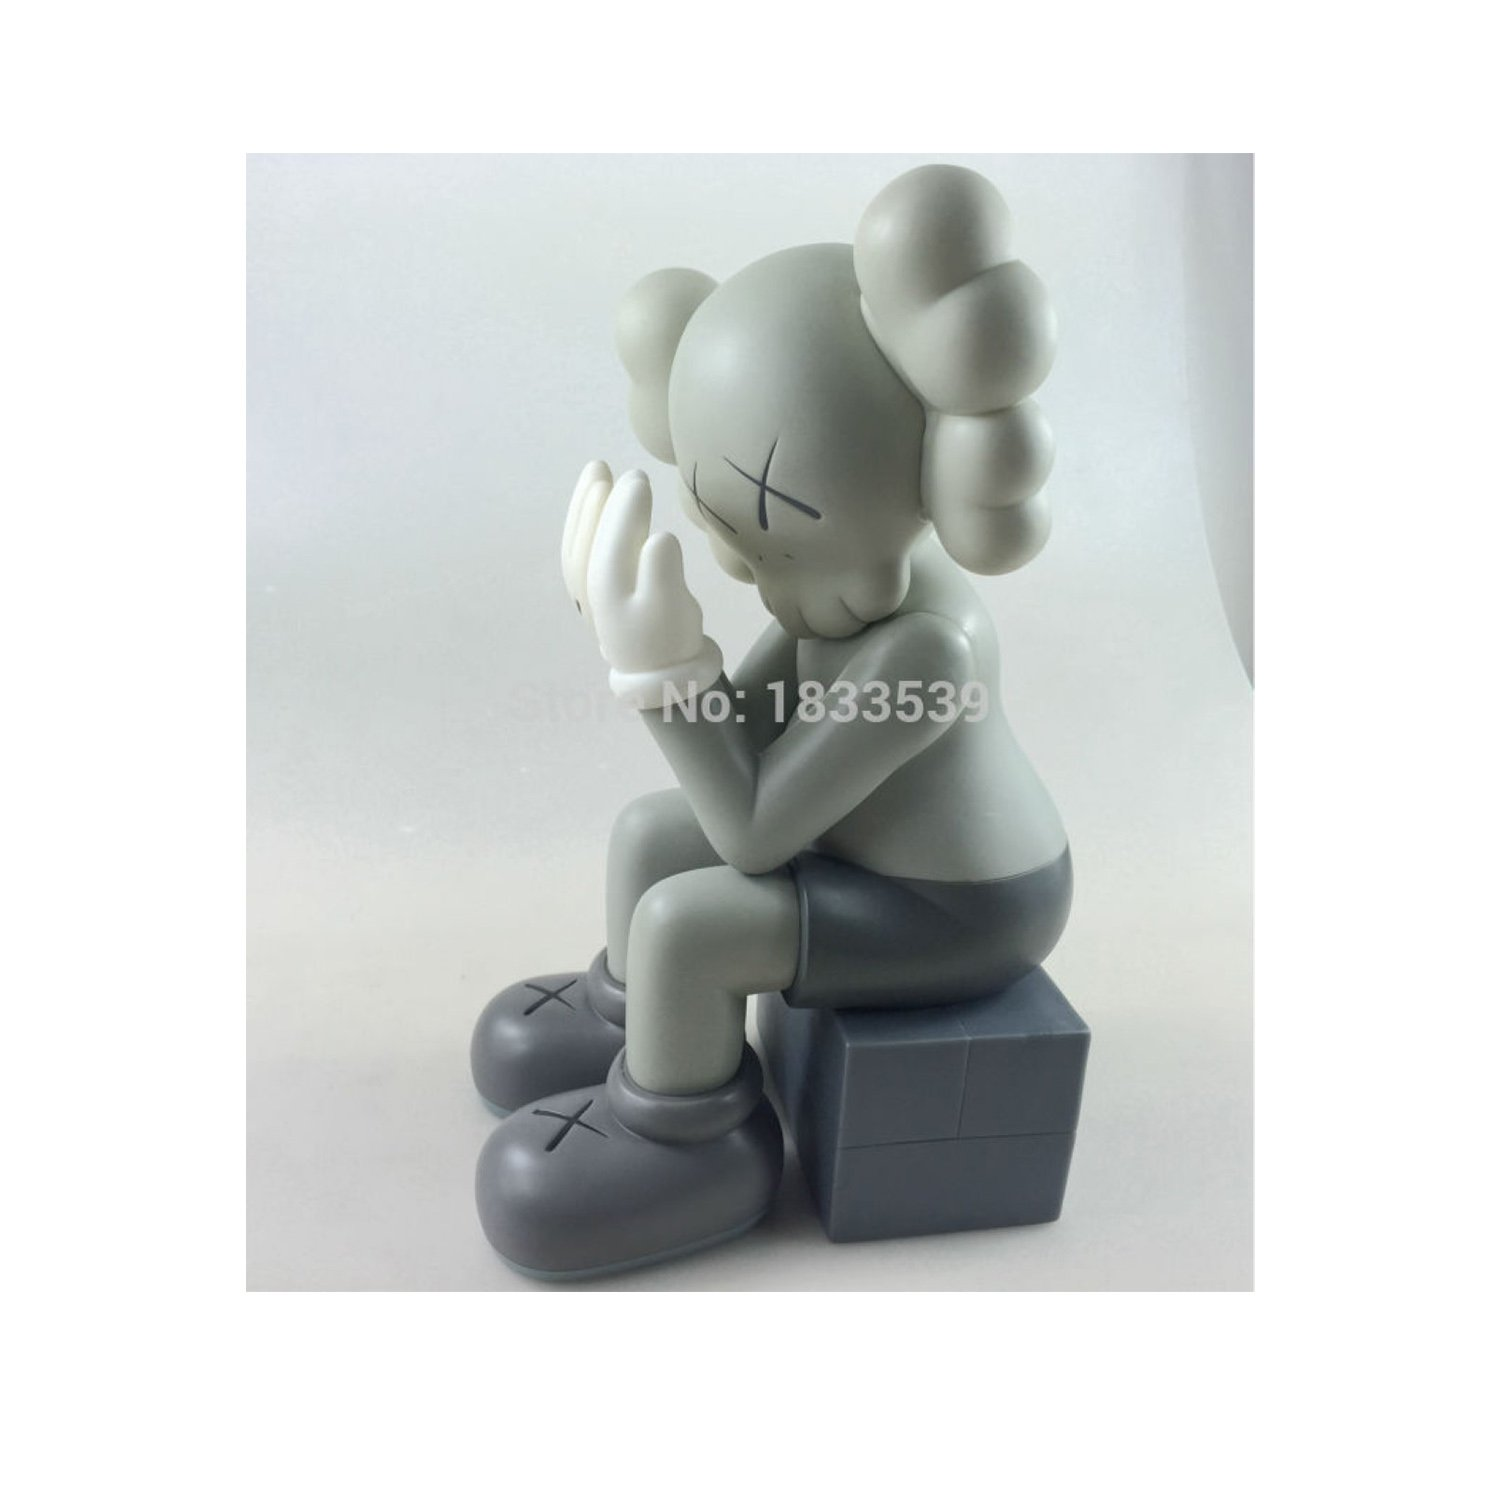 1e01ef91 Kaws BFF Dissected 16 inch Black Red Grey Companion Original Fake Art Toys  Action Figure Figurine